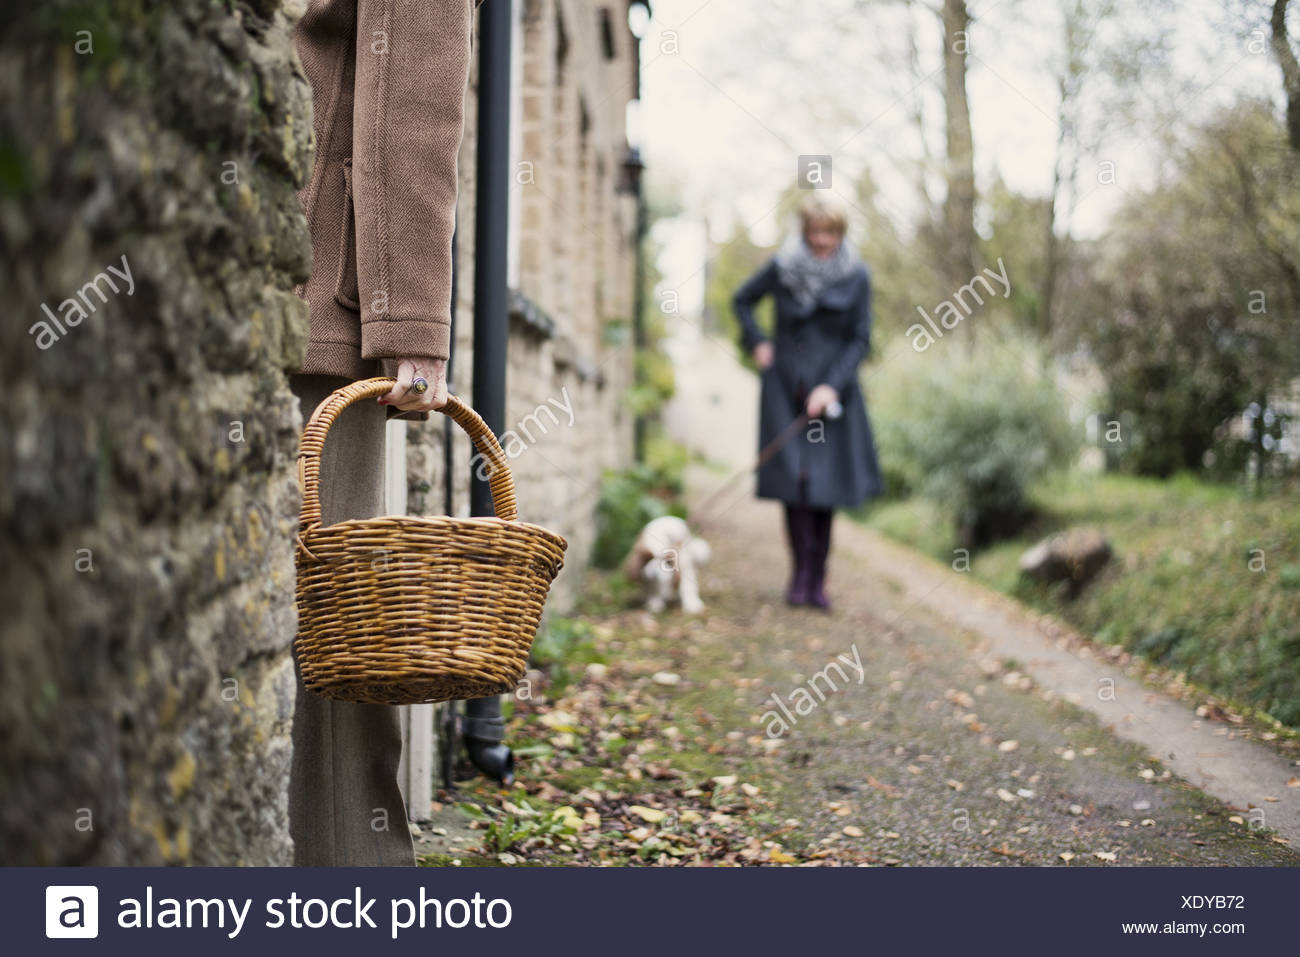 Senior woman standing in doorway, low angle view, waiting for mature woman, walking dog - Stock Image